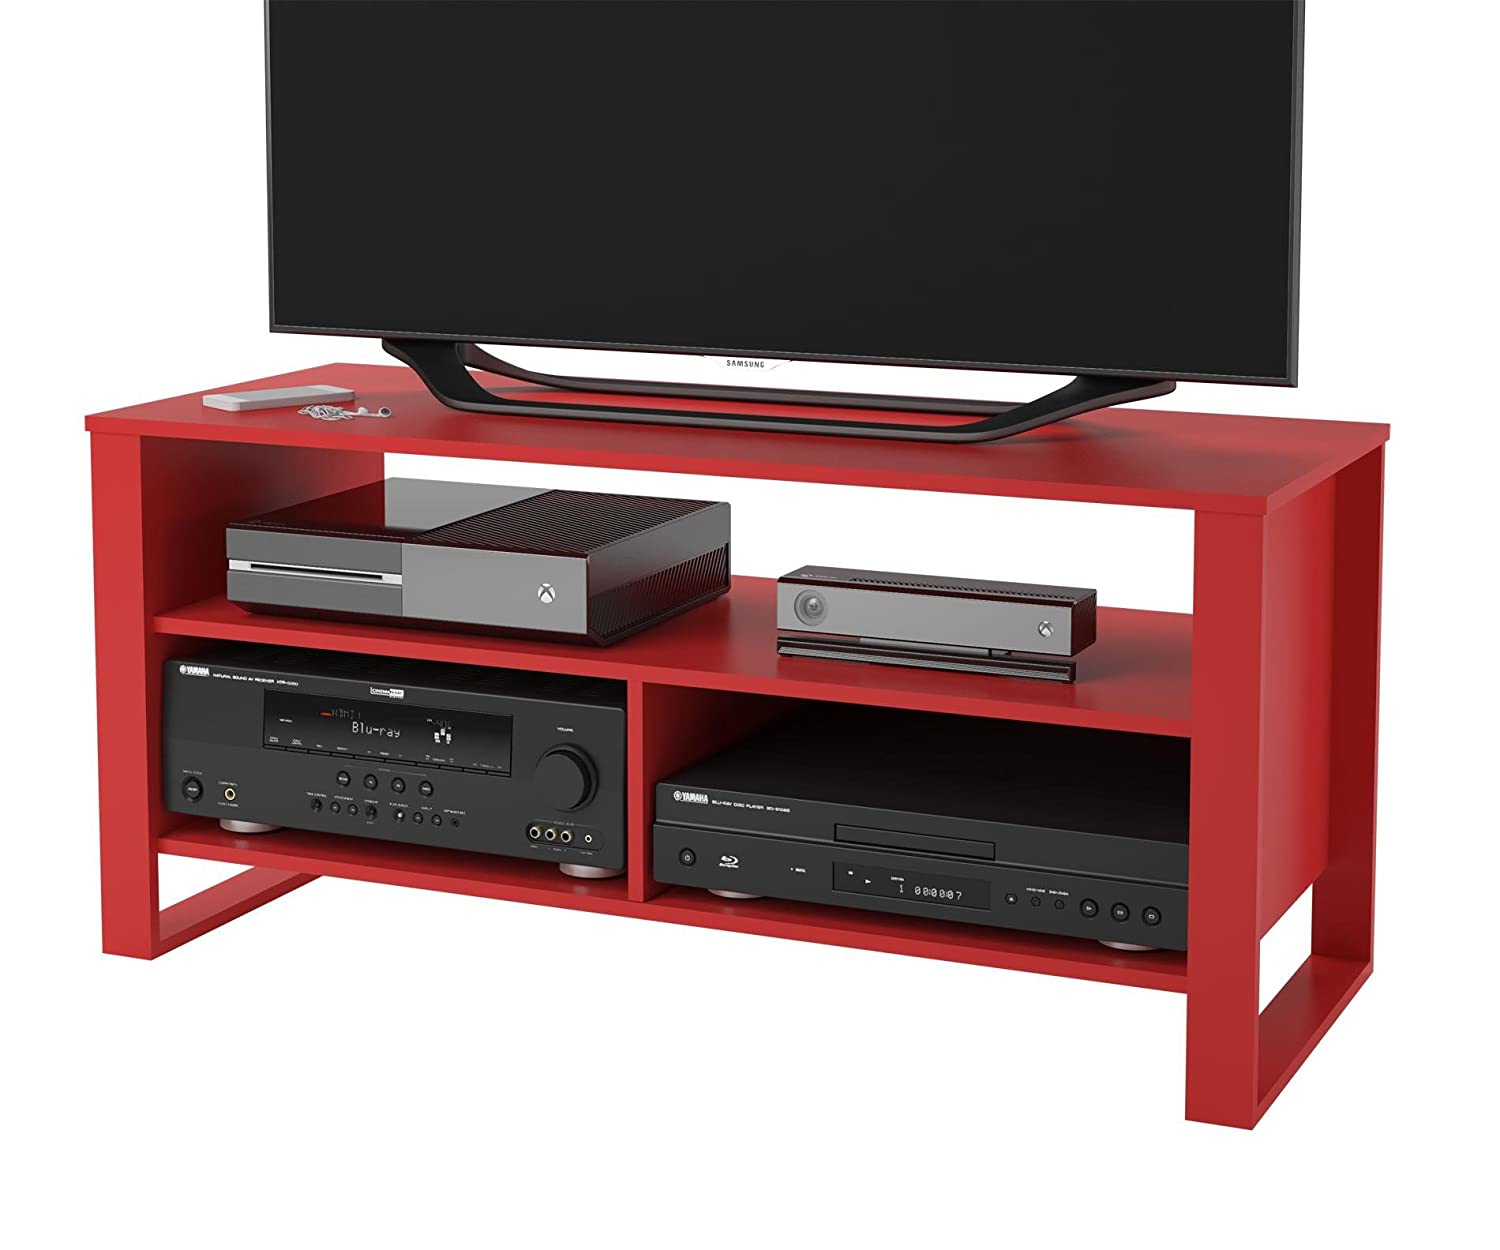 amazoncom altra reese  tv stand ruby red kitchen  dining -